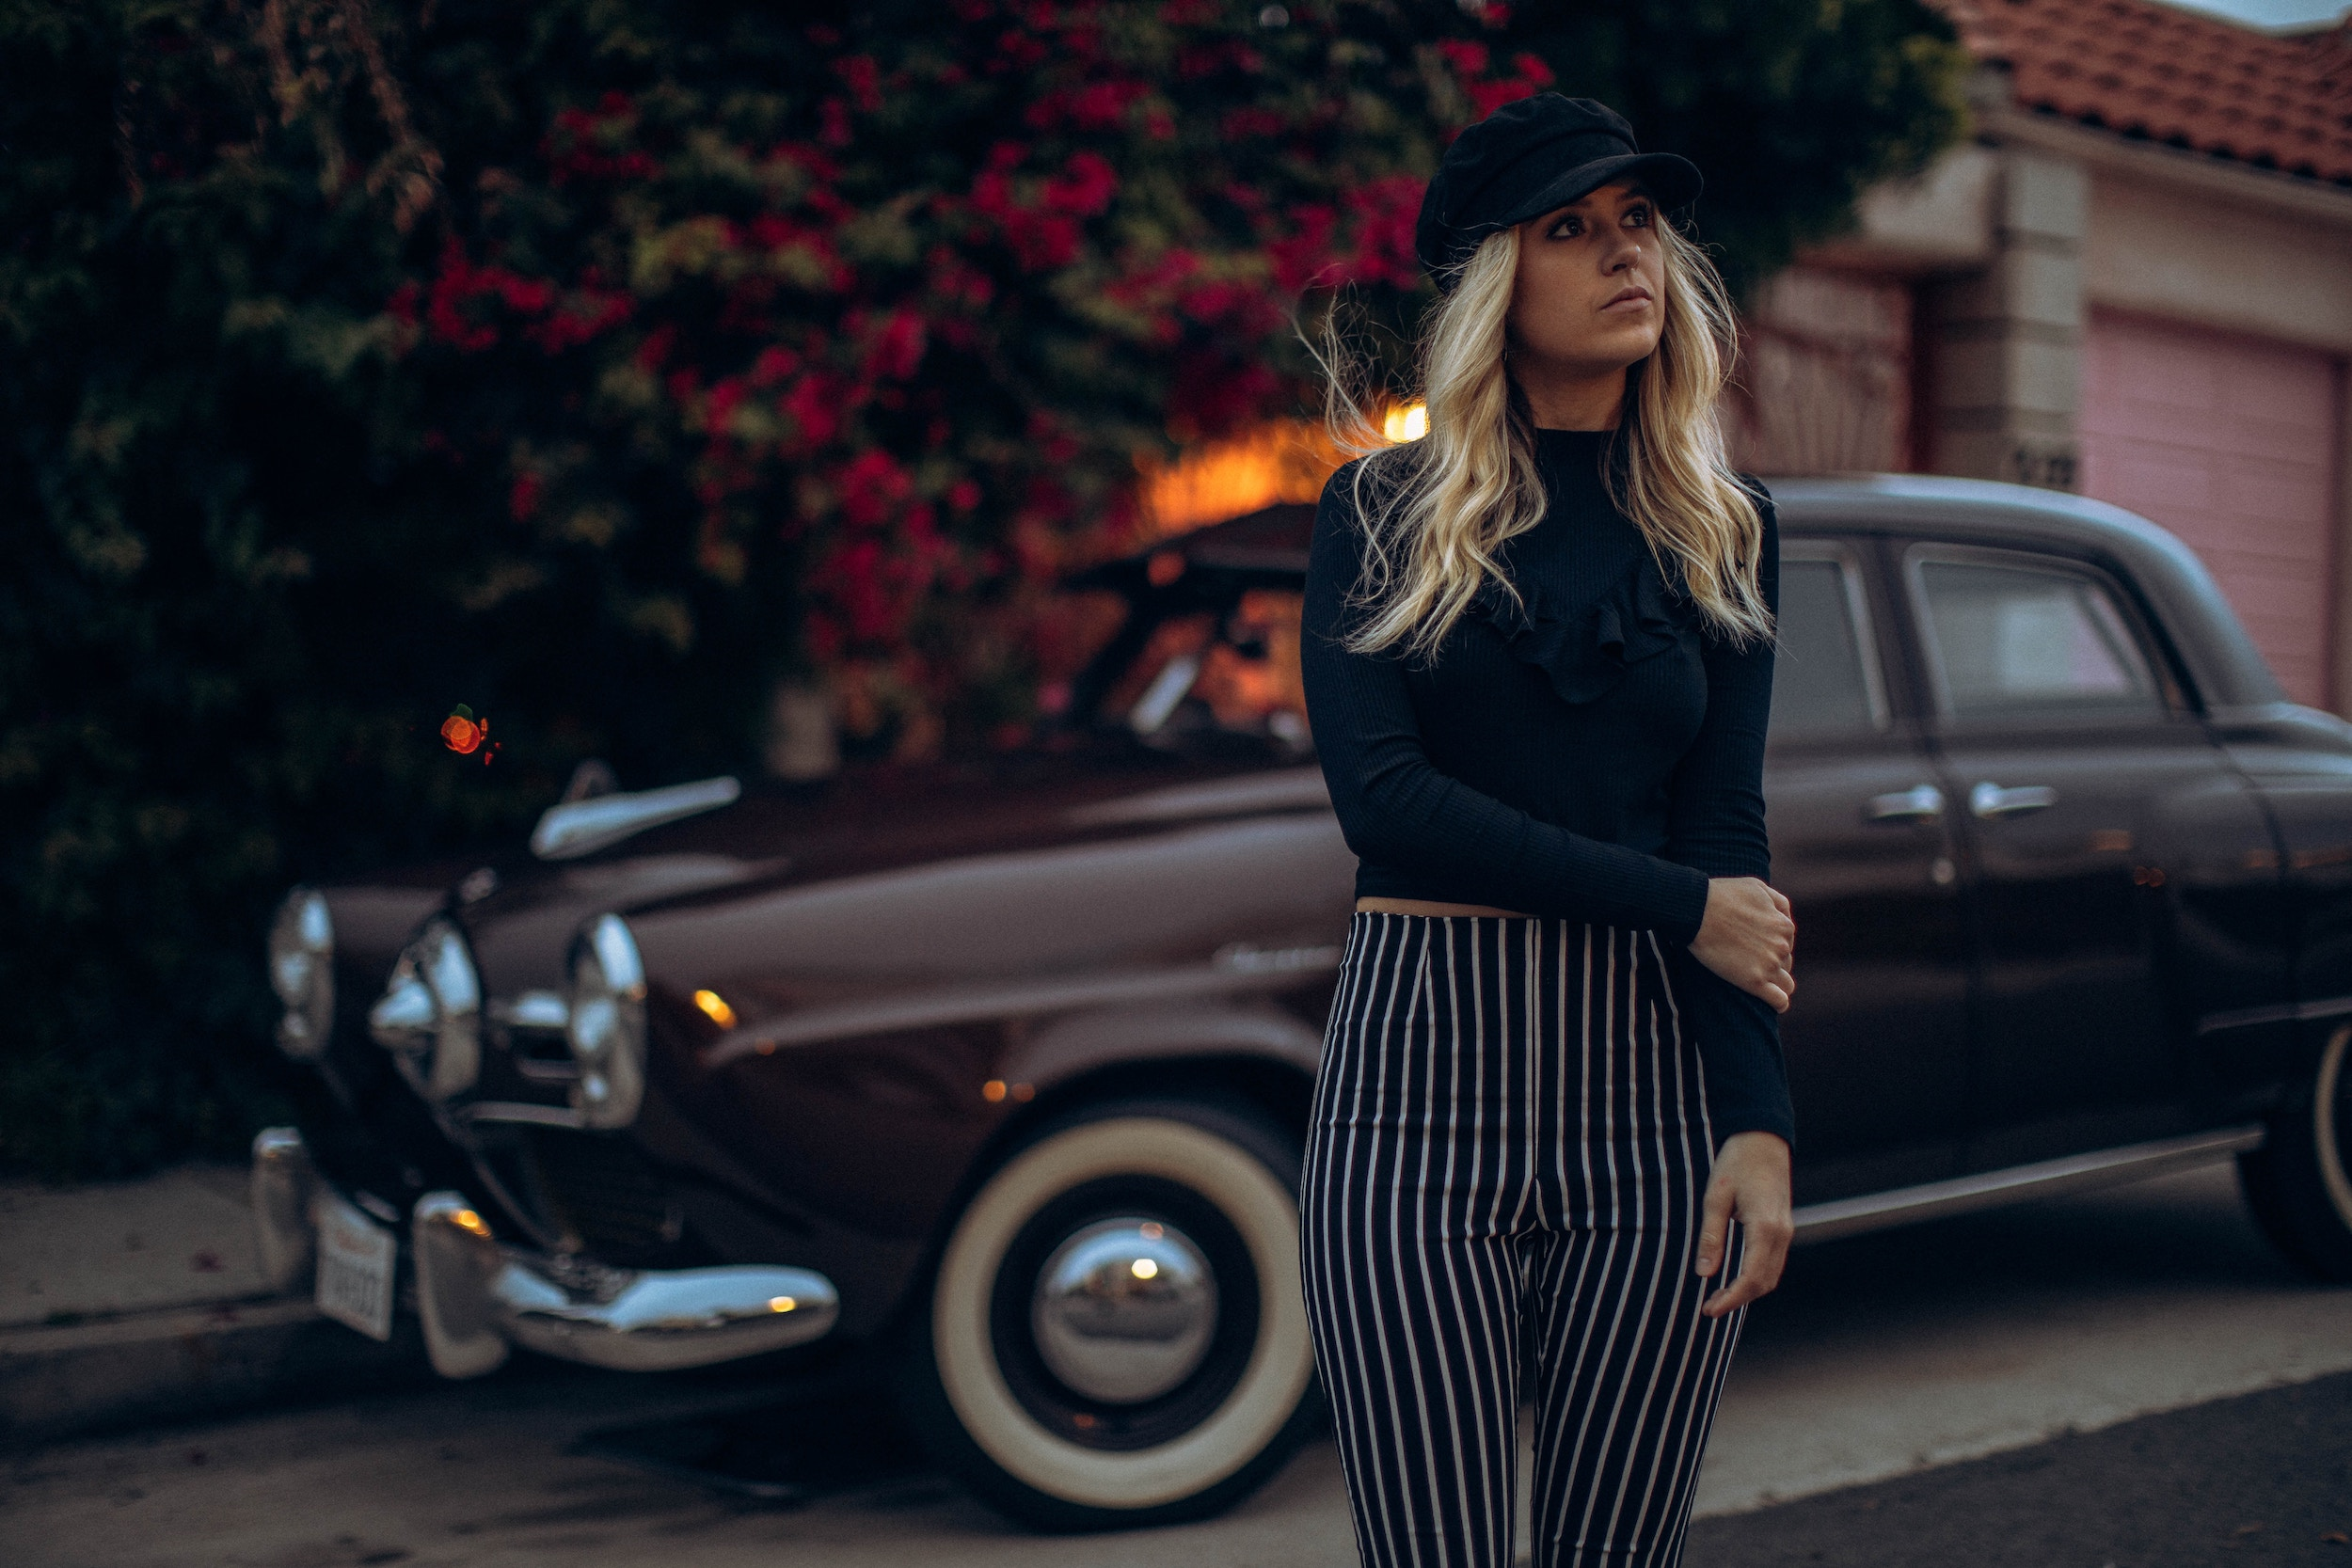 woman standing in street next to old car in pinstriped pants